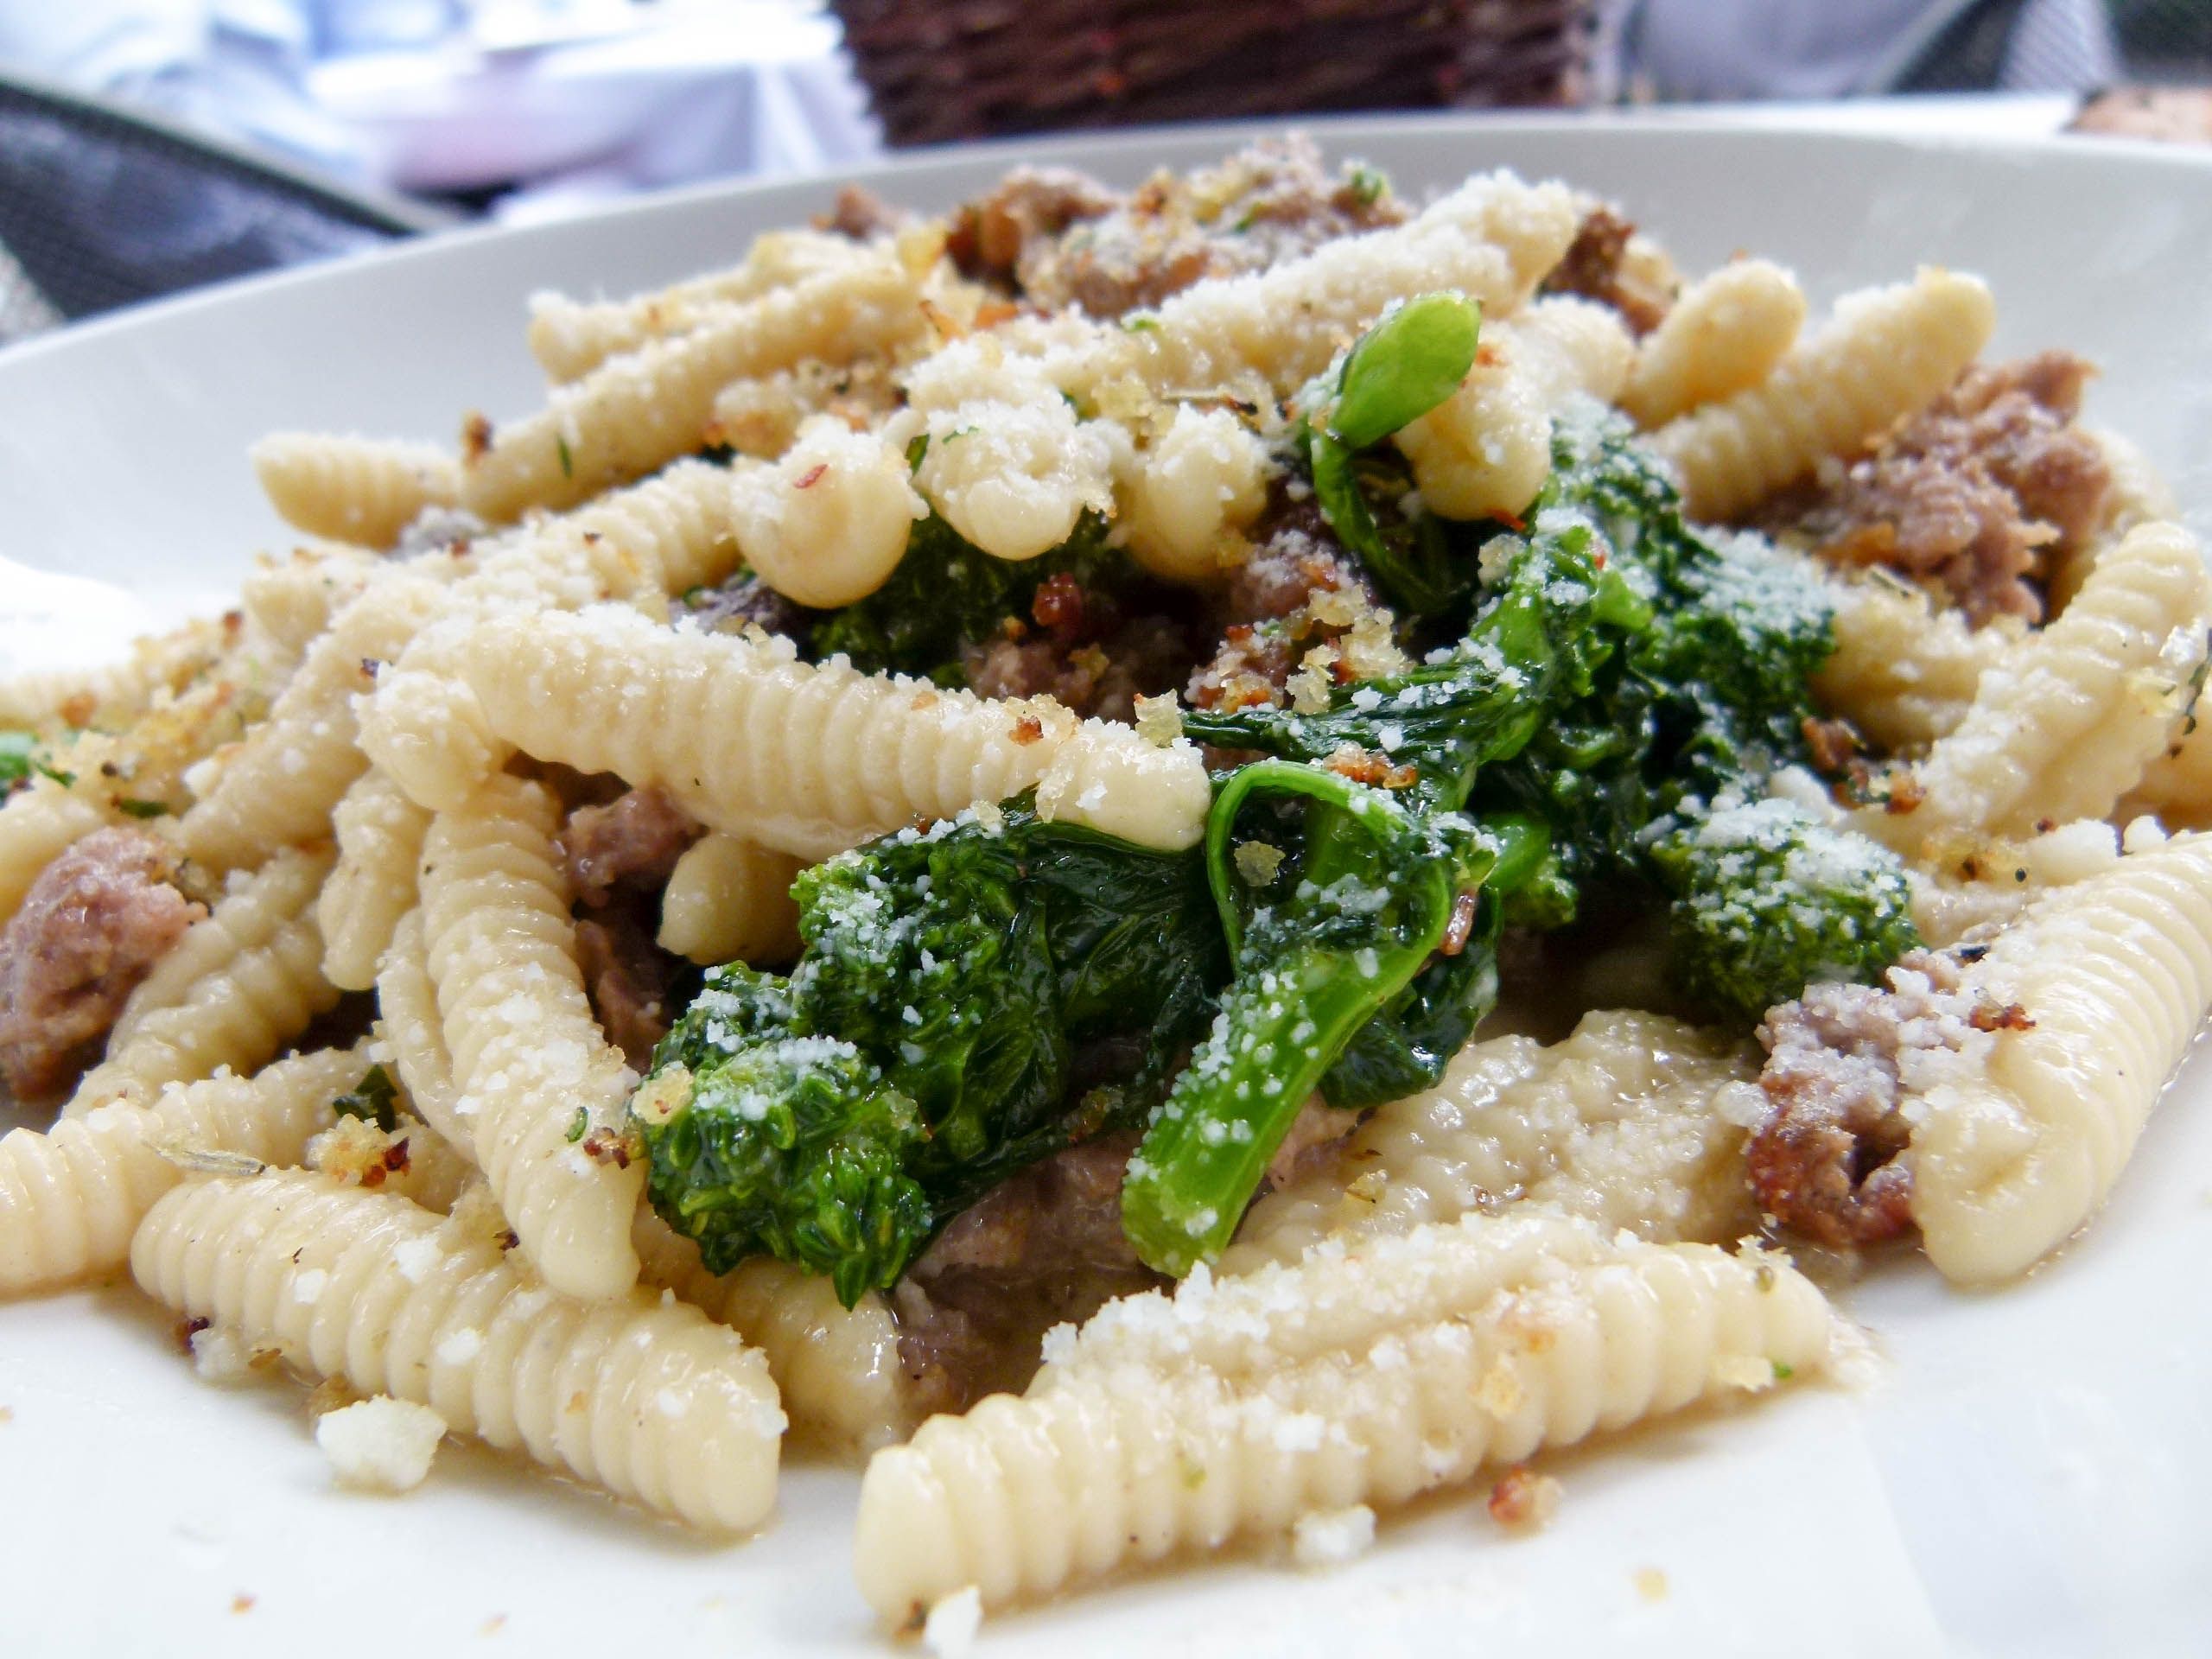 A dash of rapini adds an excellent complement to both the house-made sausage and cavatelli.